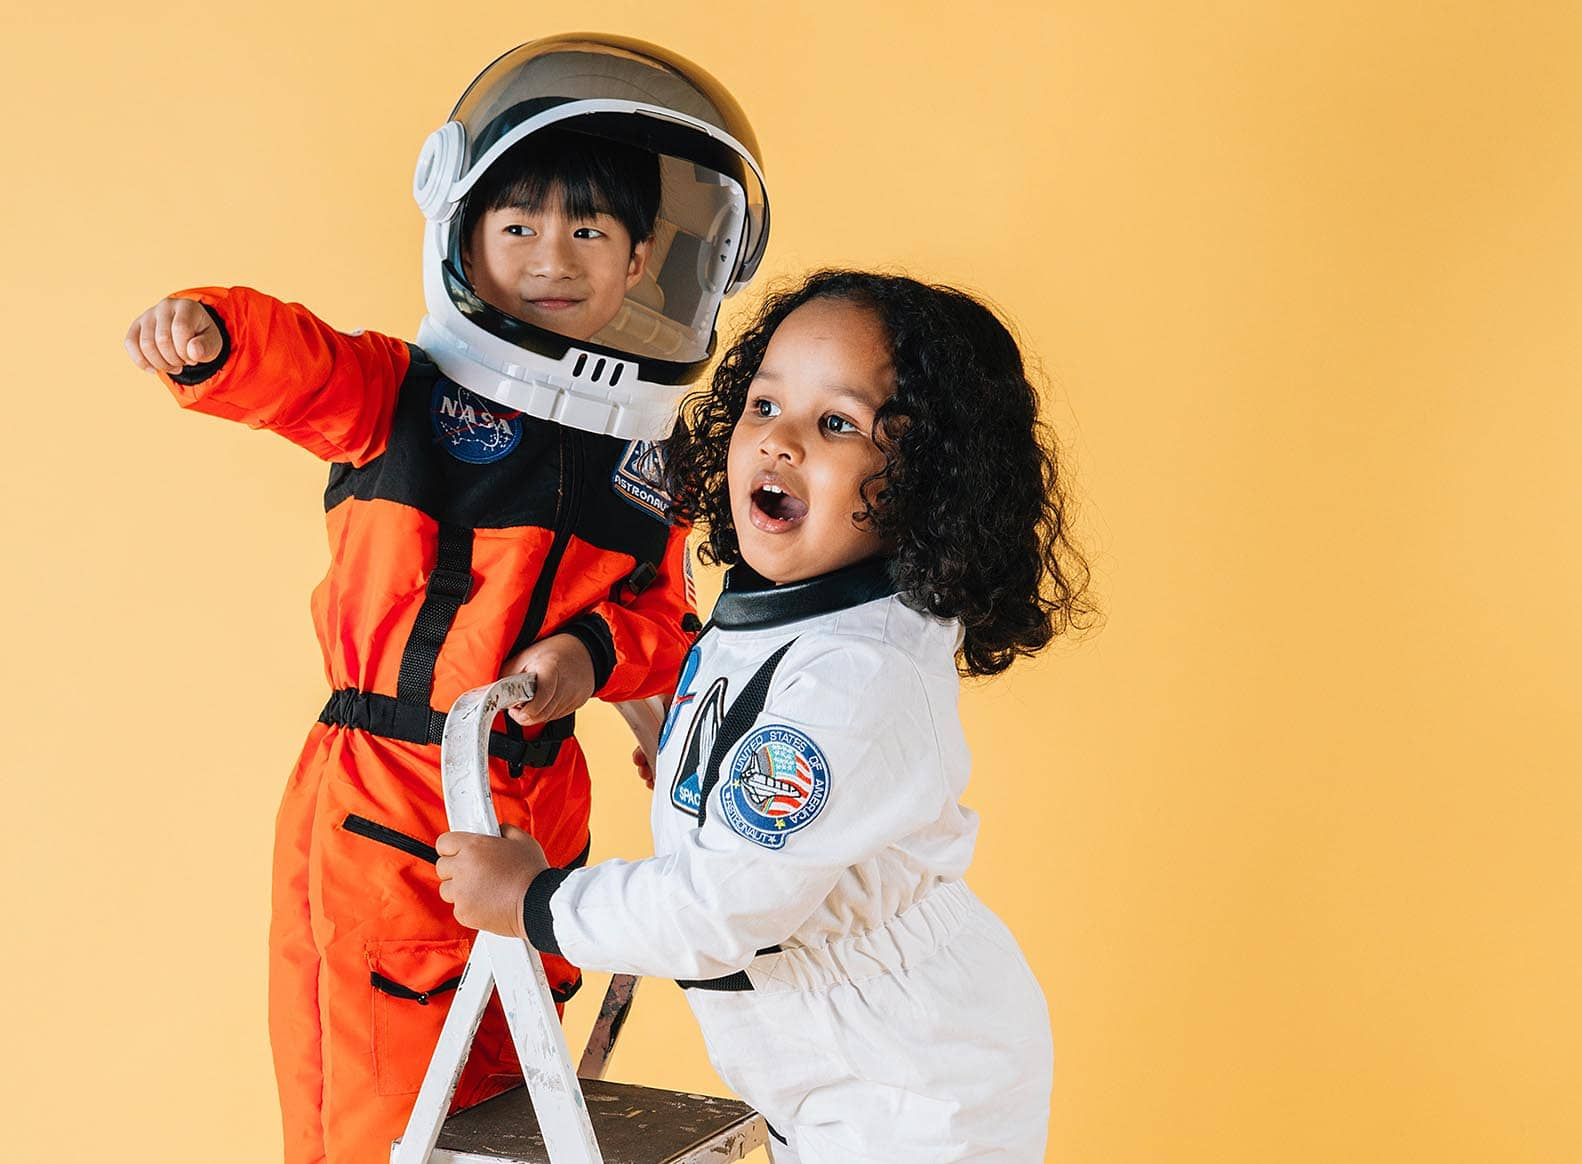 boy and girl in space suits playing